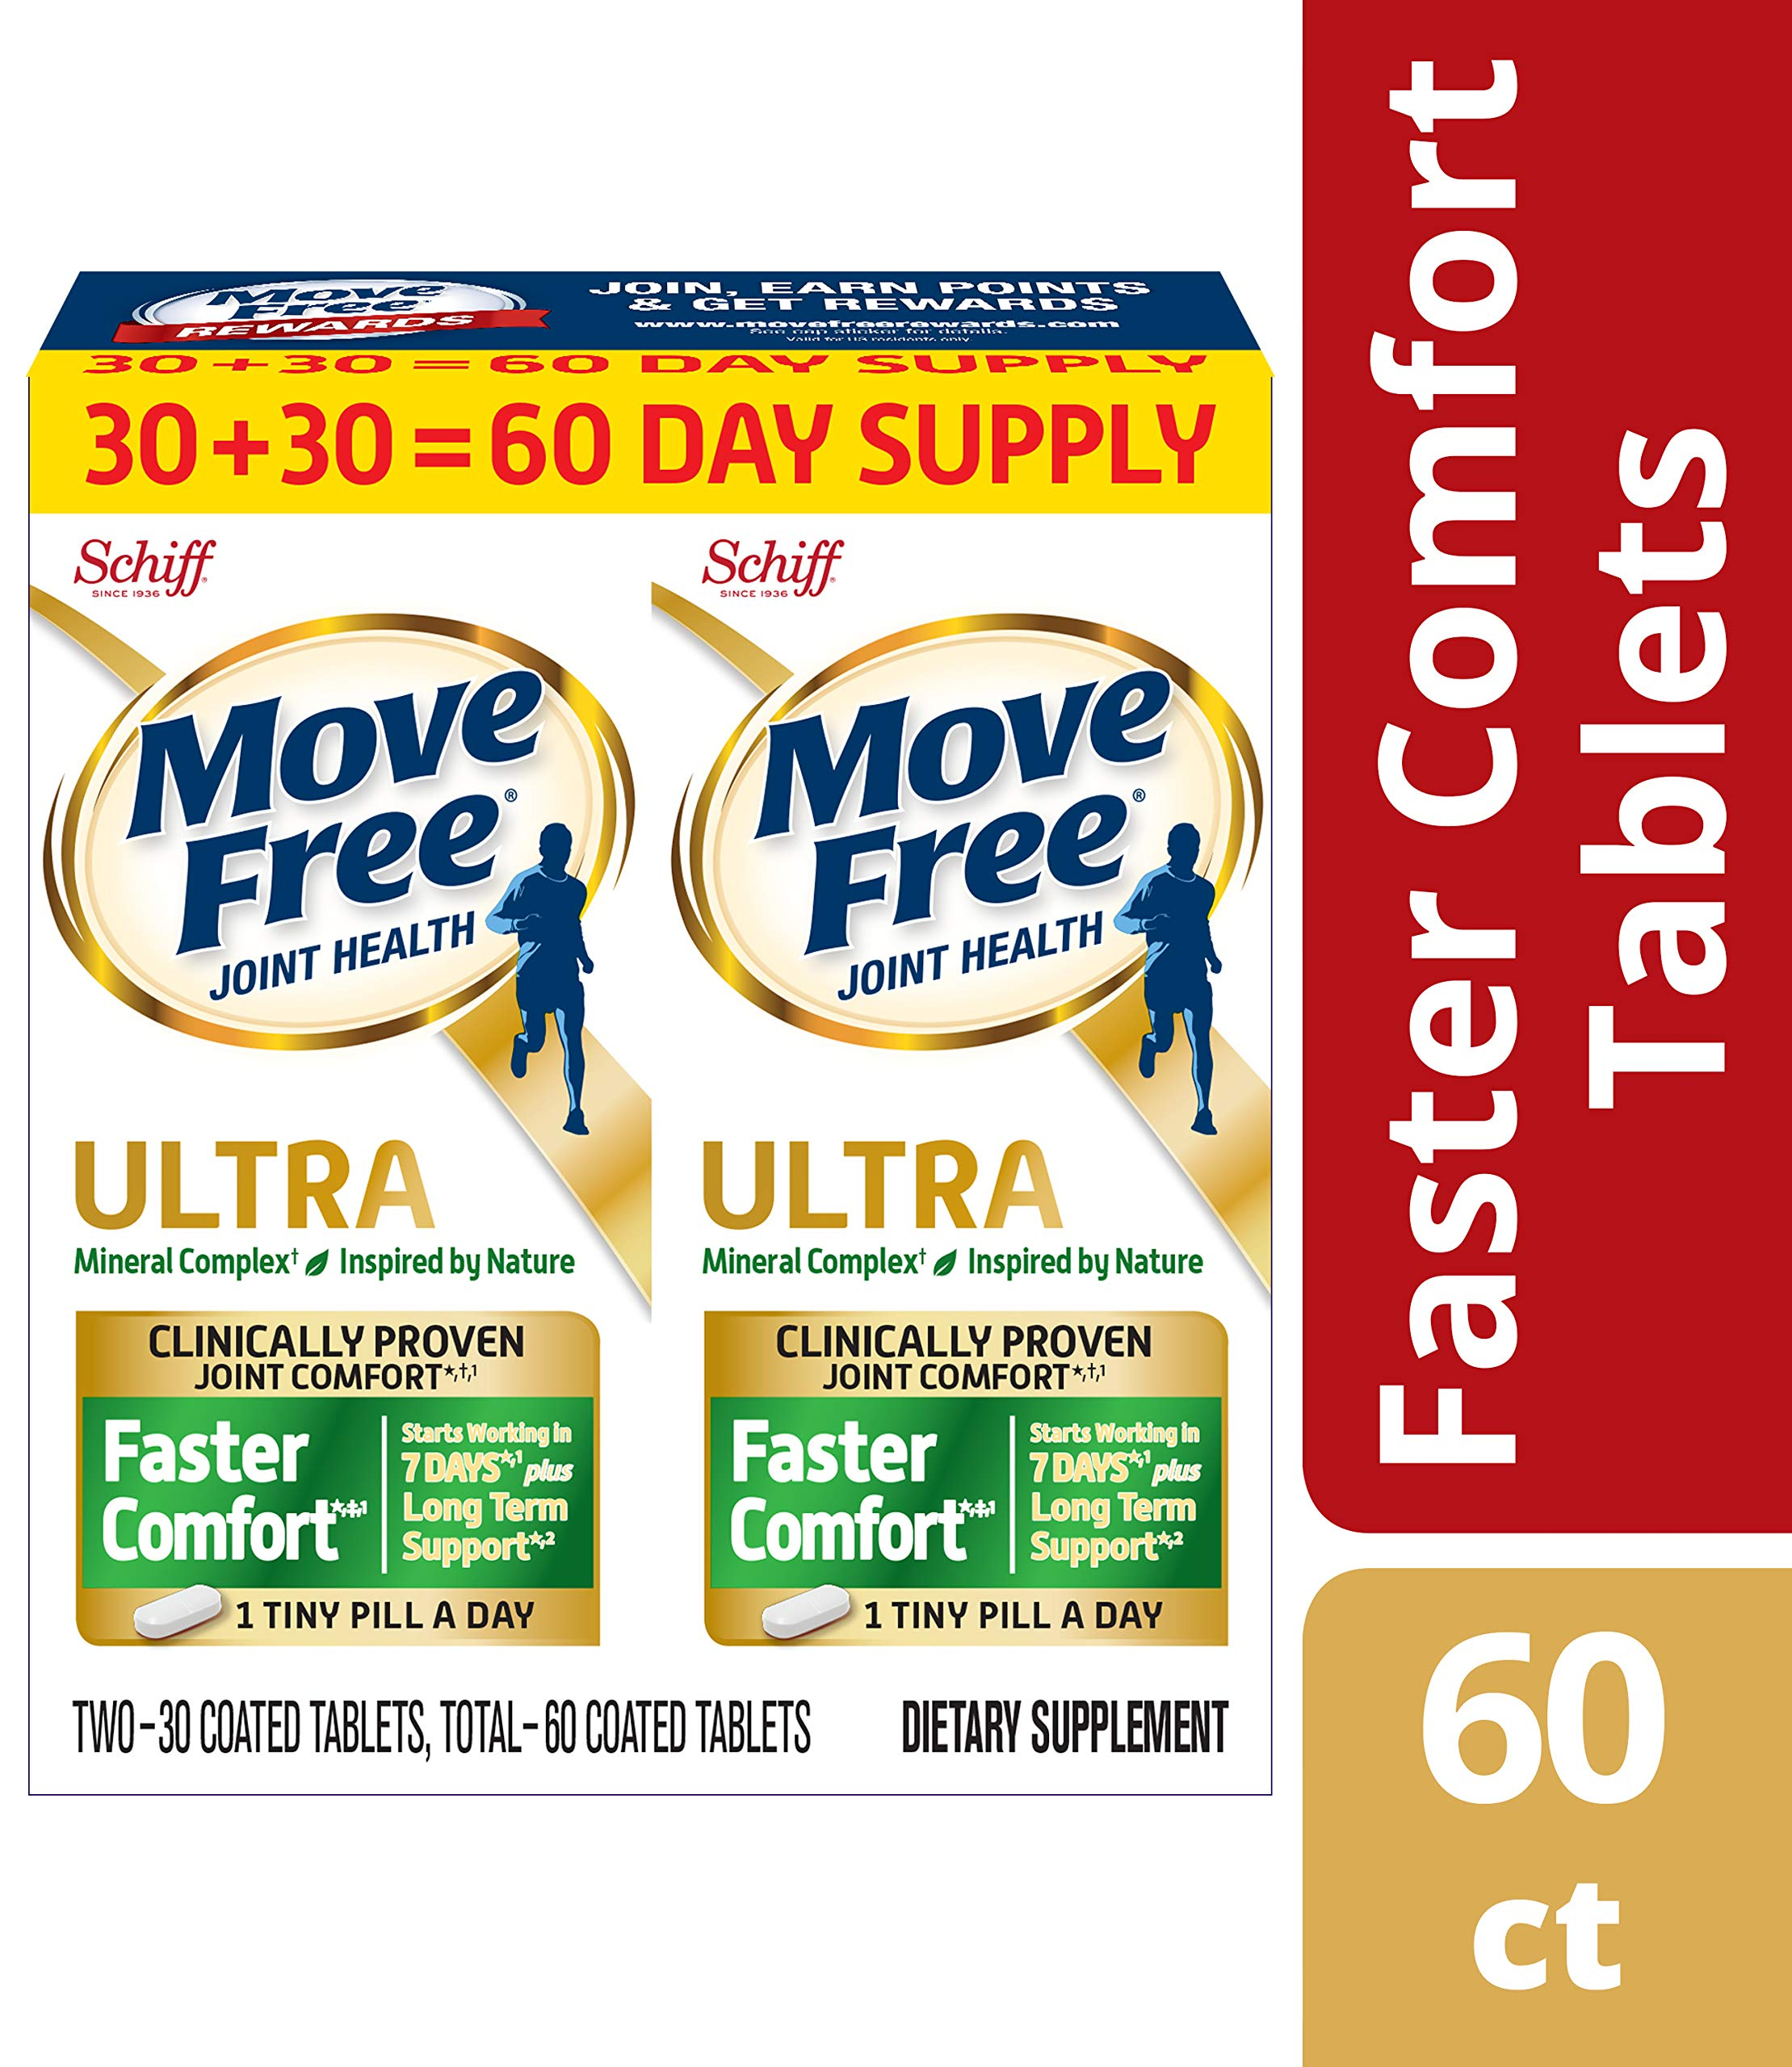 Calcium & Calcium Fructoborate Based Ultra Faster Comfort Joint Health Supplement Tablets, Move Free (60 count in a bottle), Clinically Proven Joint Comfort in 1 Tiny Pill A Day (Packaging May Vary) by Move Free